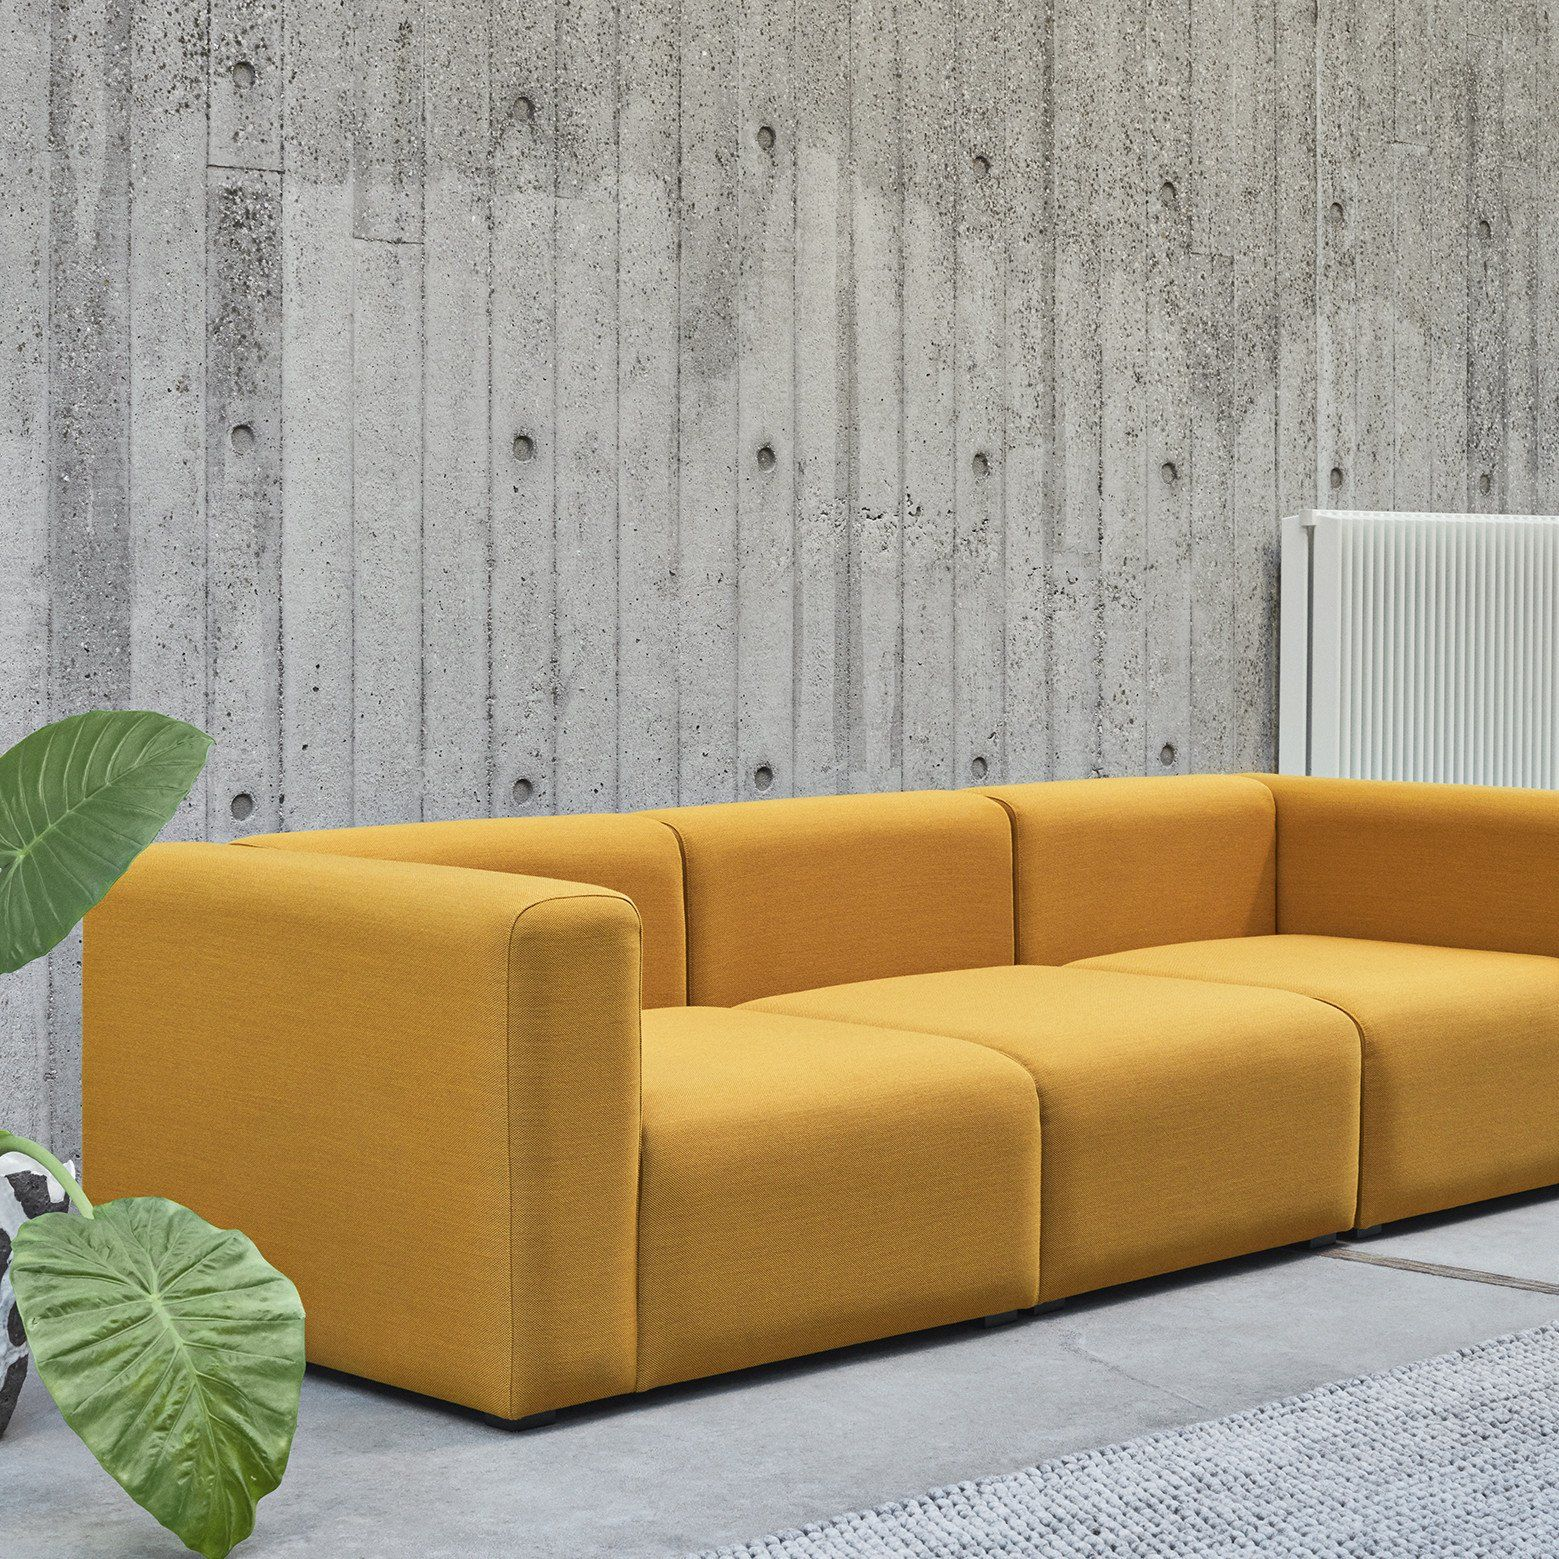 Mags Modular Sofa By Hay